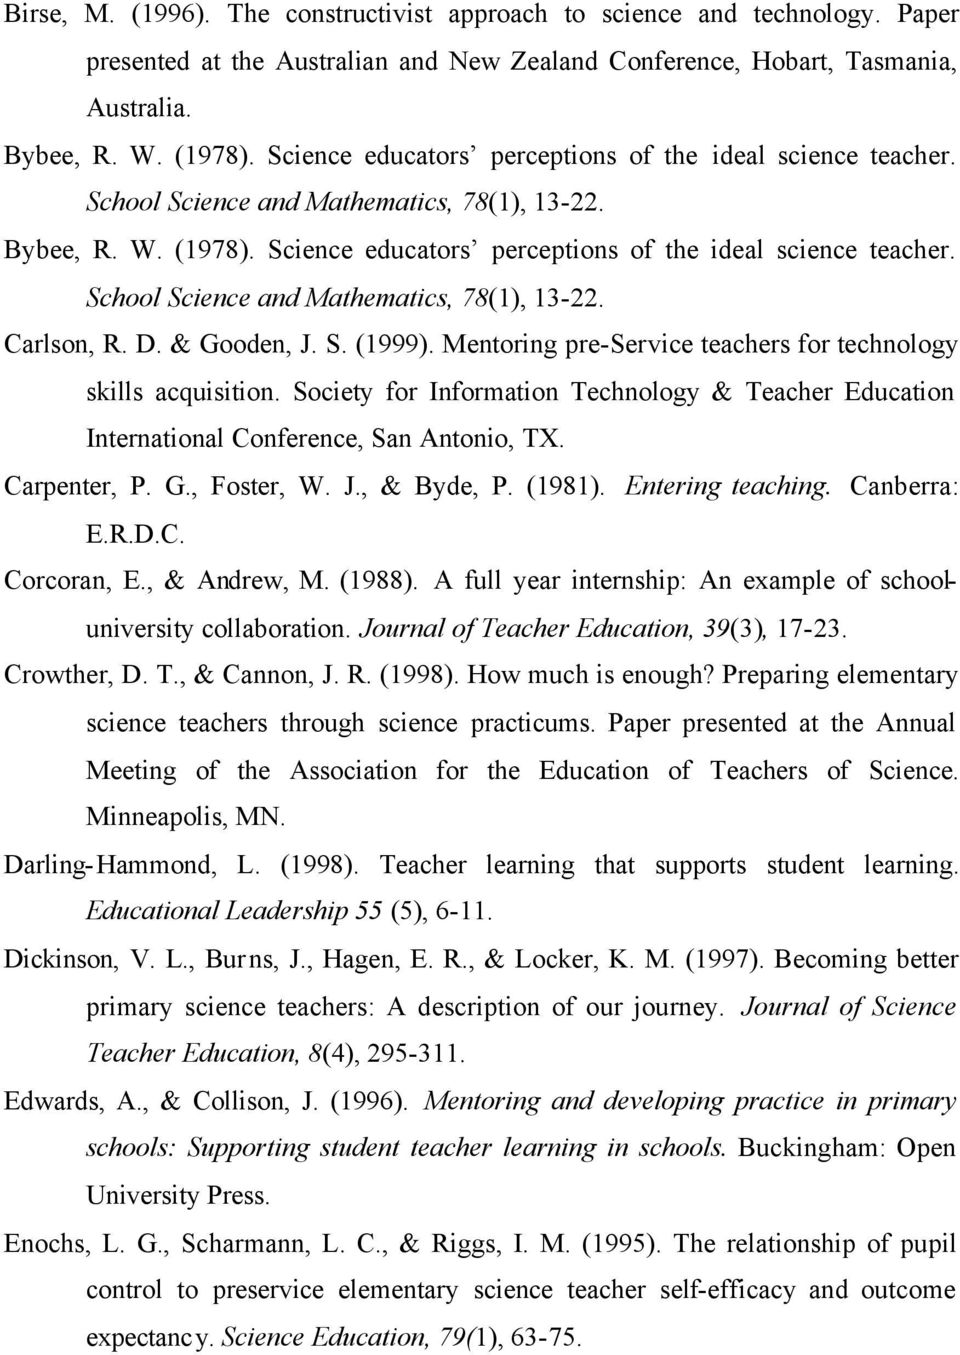 School Science and Mathematics, 78(1), 13-22. Carlson, R. D. & Gooden, J. S. (1999). Mentoring pre-service teachers for technology skills acquisition.